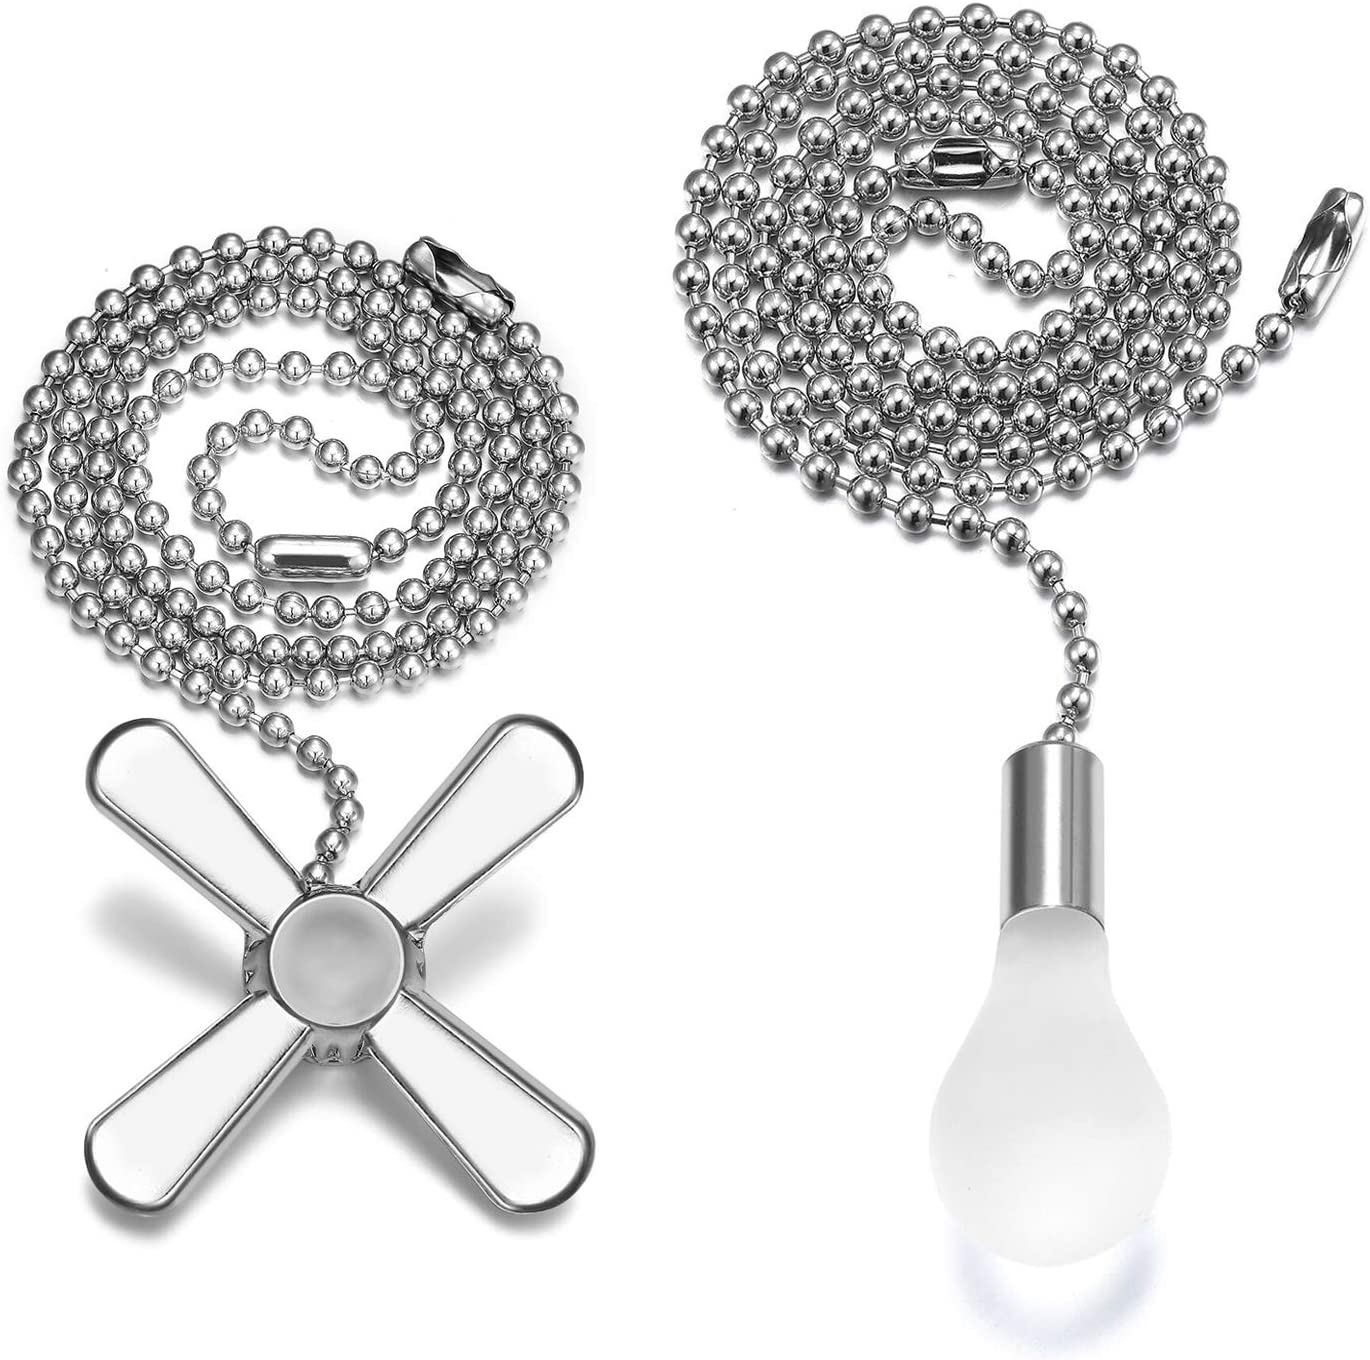 Ceiling Fan Pull Chain, 2pcs 24-inch 3mm Diameter Beaded Ball Extension Chains with Decorative Light Bulb and Fan Cord (Silver): Kitchen & Dining